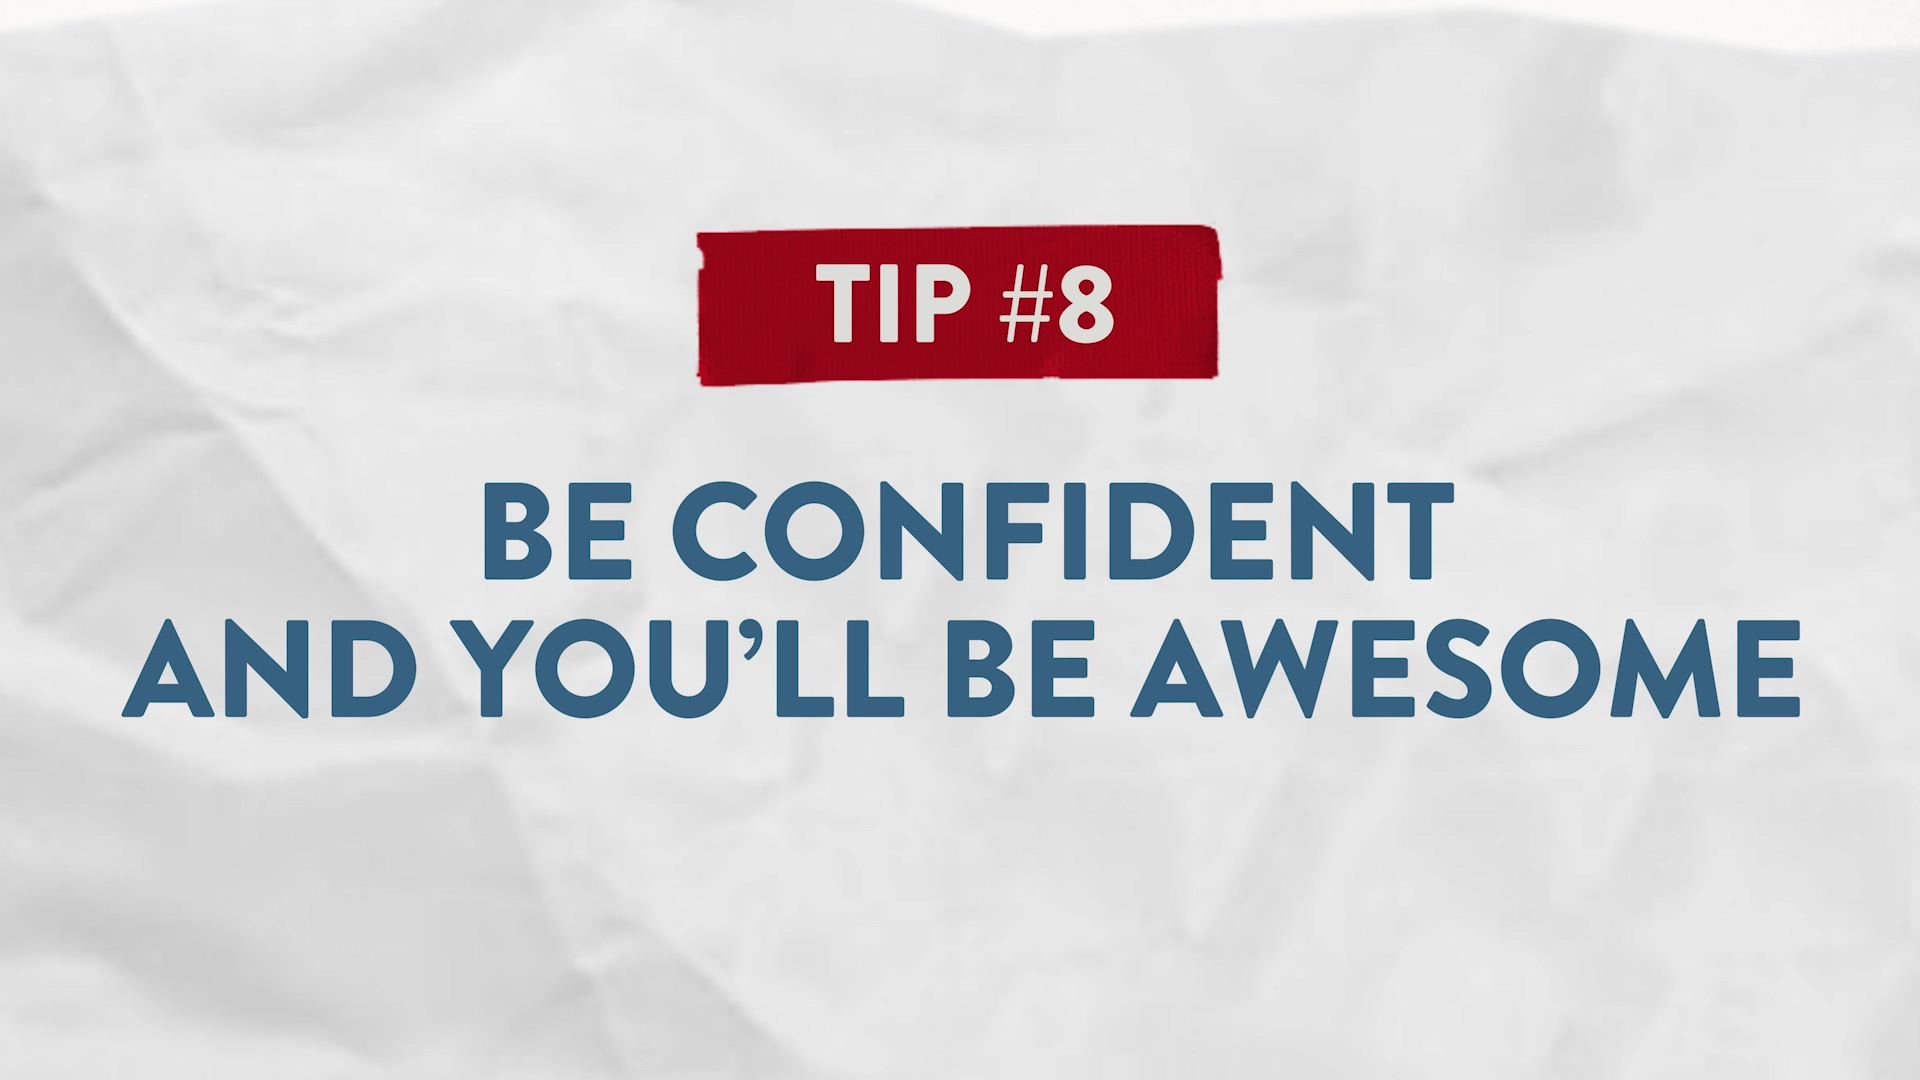 Tip #8 Be Confident and Youll Be Awesome